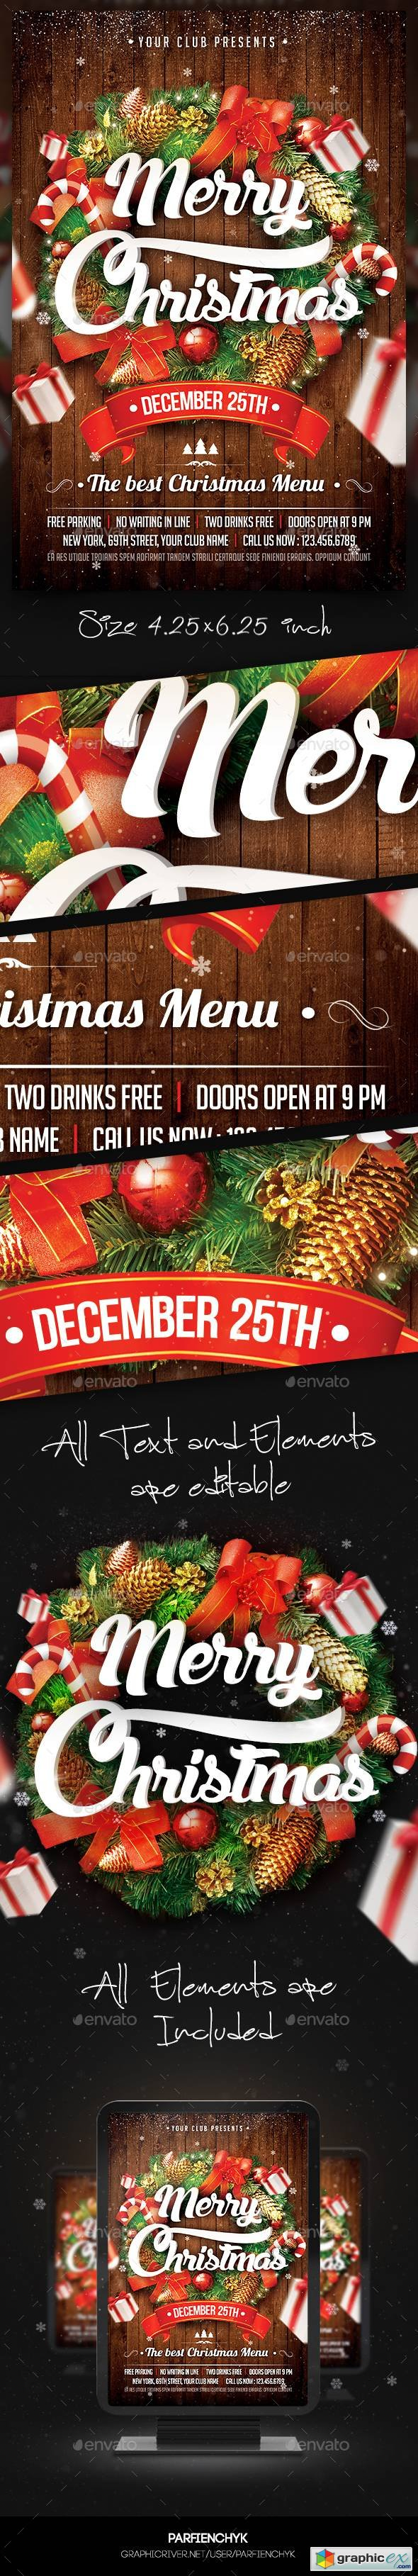 Christmas Party Flyer Template 13746216